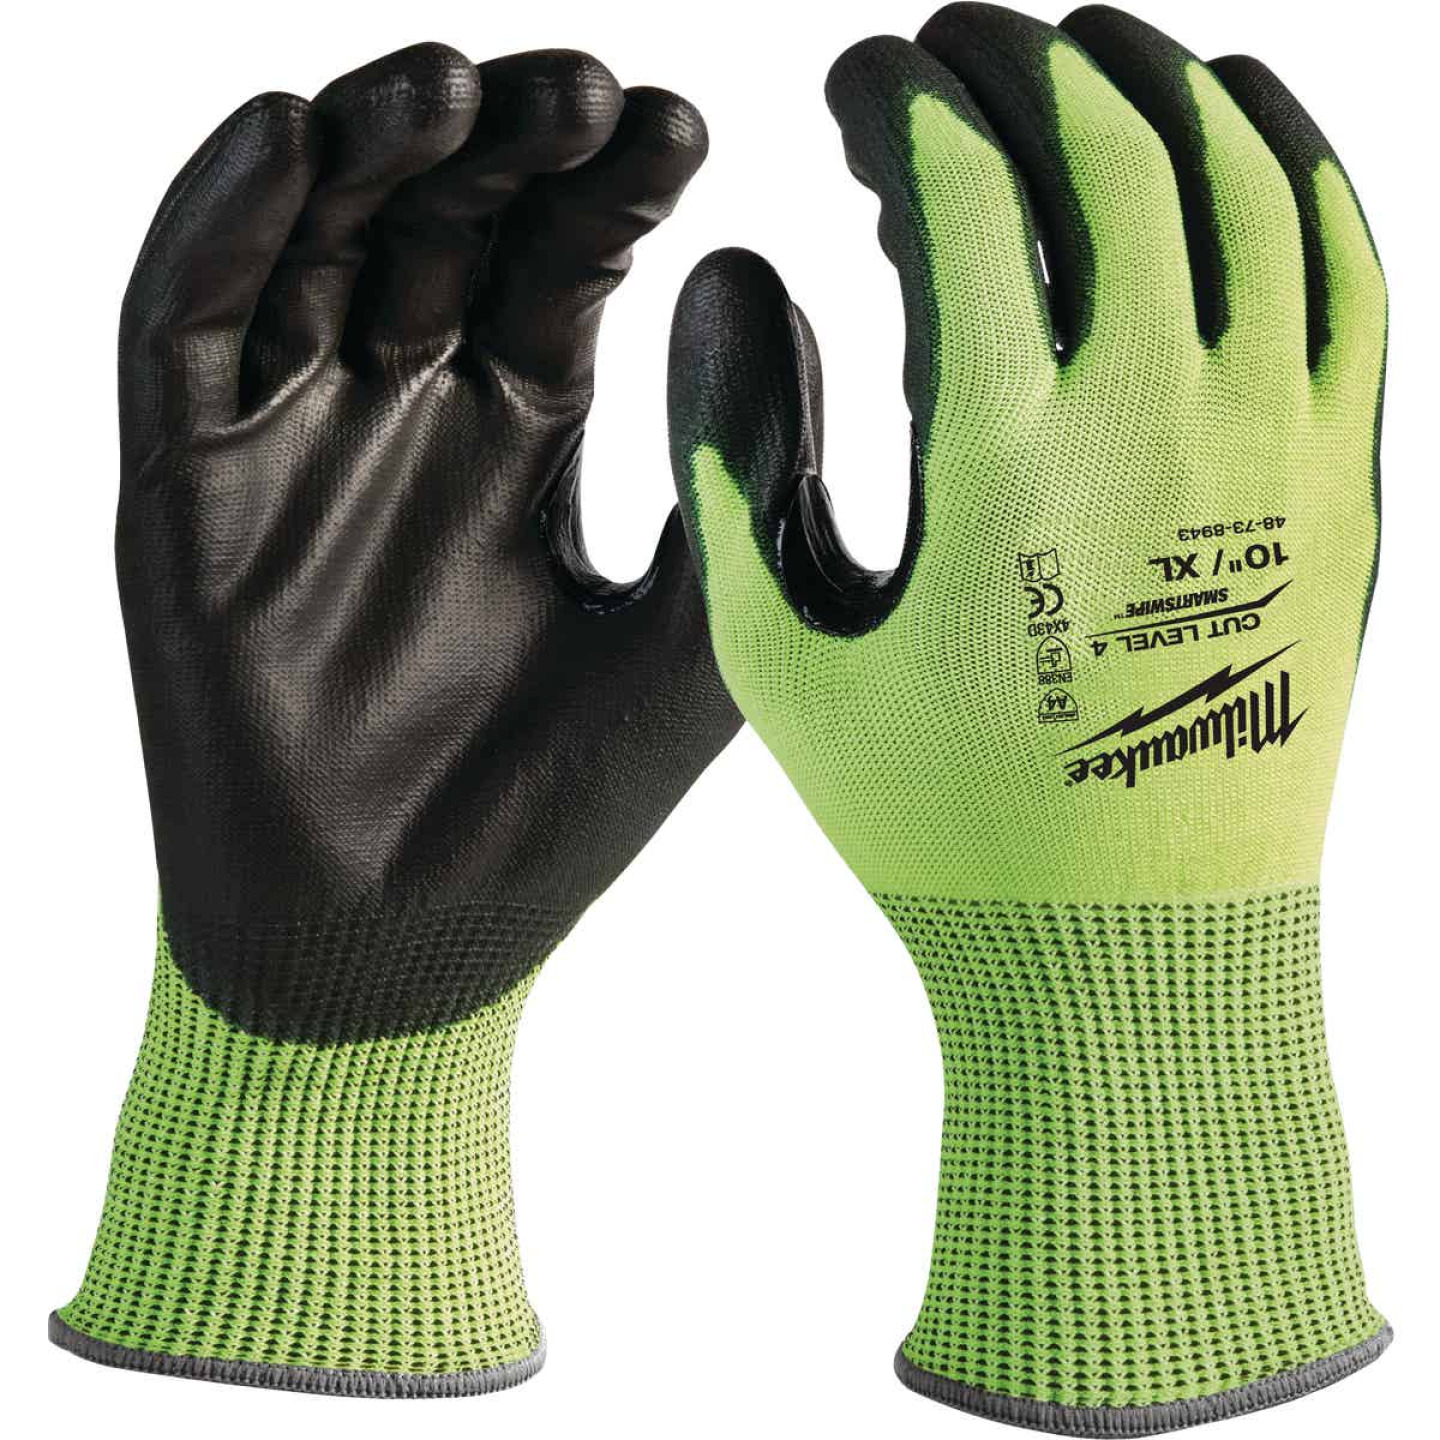 Milwaukee Men's Large Cut Level 3 High Vis Nitrile Dipped Glove Image 1